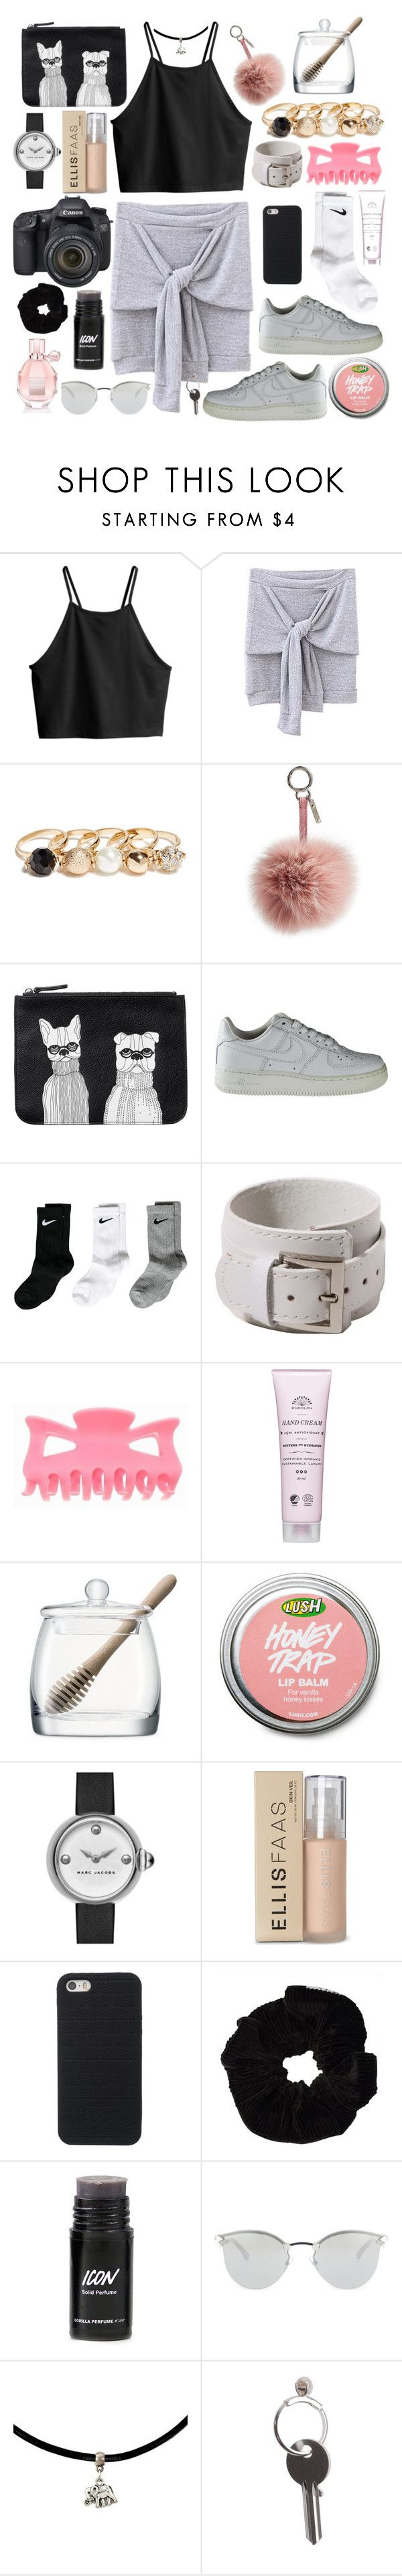 """""""Plush"""" by swanniboo on Polyvore featuring H&M, GUESS, Fendi, Monki, NIKE, LSA International, Marc by Marc Jacobs, Ellis Faas, Eos and Maison Margiela"""